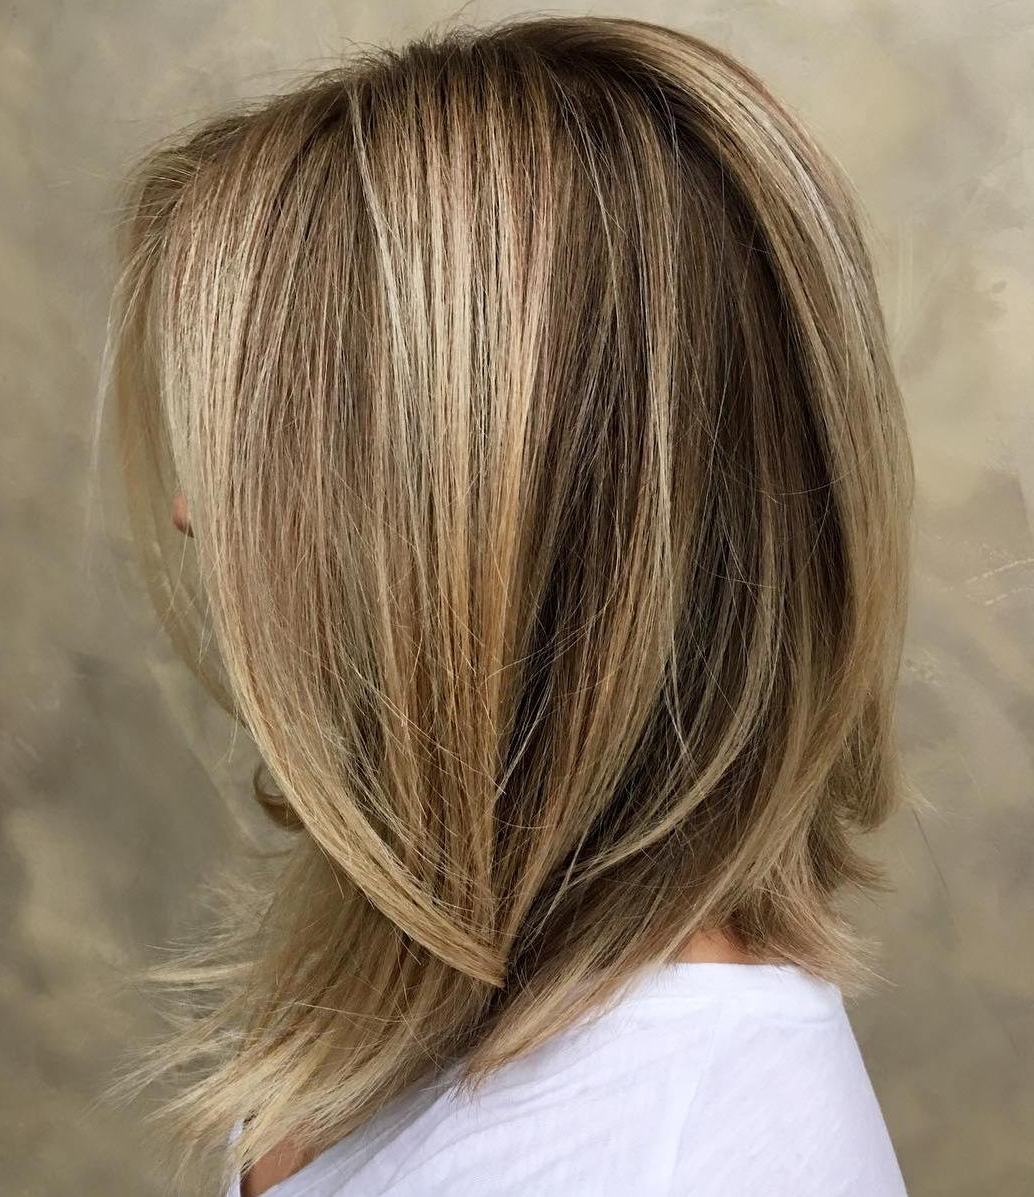 60 Inspiring Long Bob Hairstyles And Long Bob Haircuts For 2019 Inside Trendy Side Parted Shaggy Lob Hairstyles (Gallery 6 of 20)